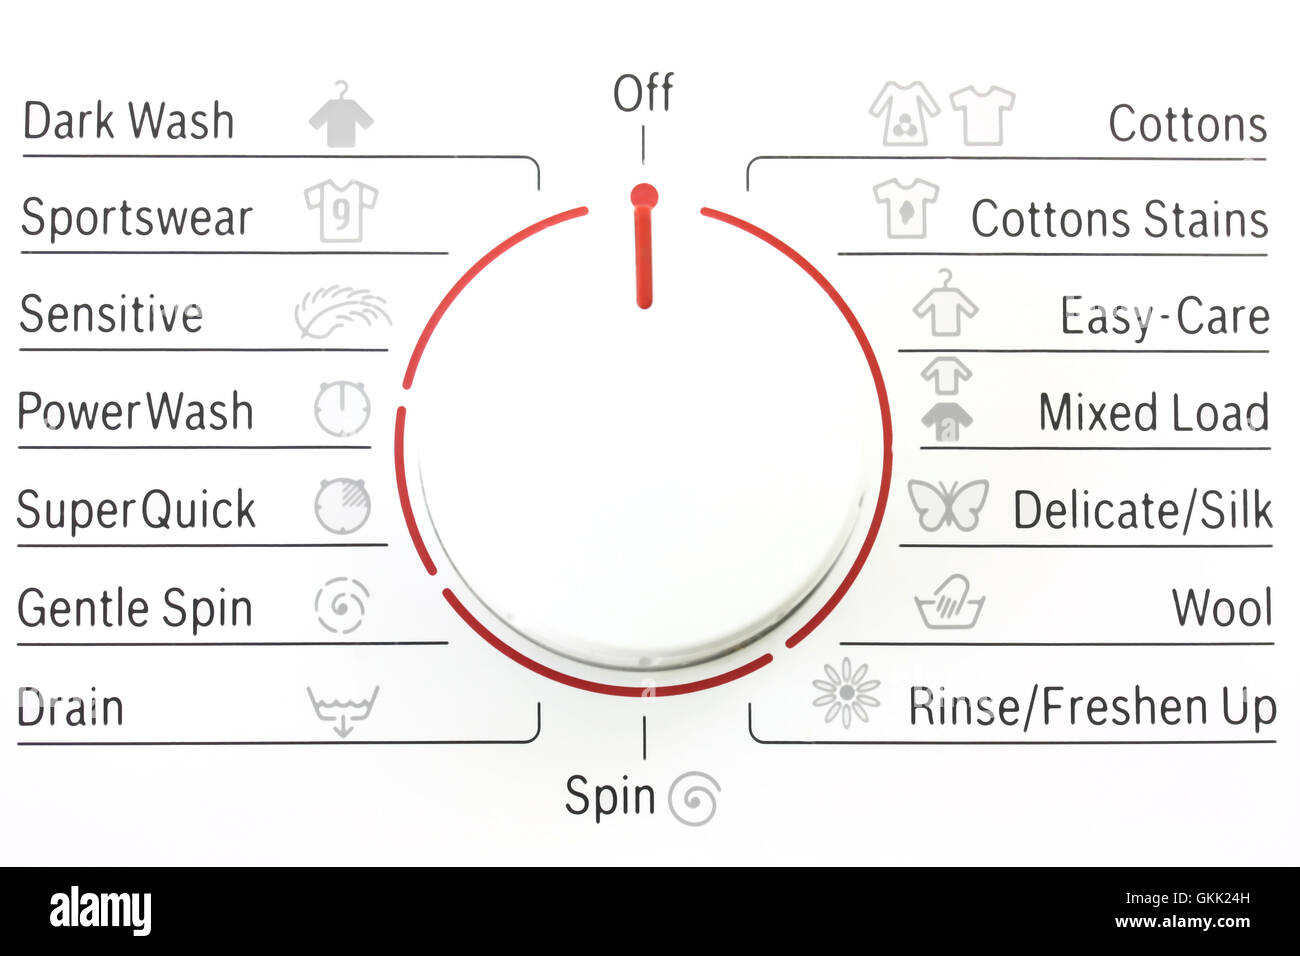 Washing Machine Controls With Symbols Stock Photo 115359457 Alamy